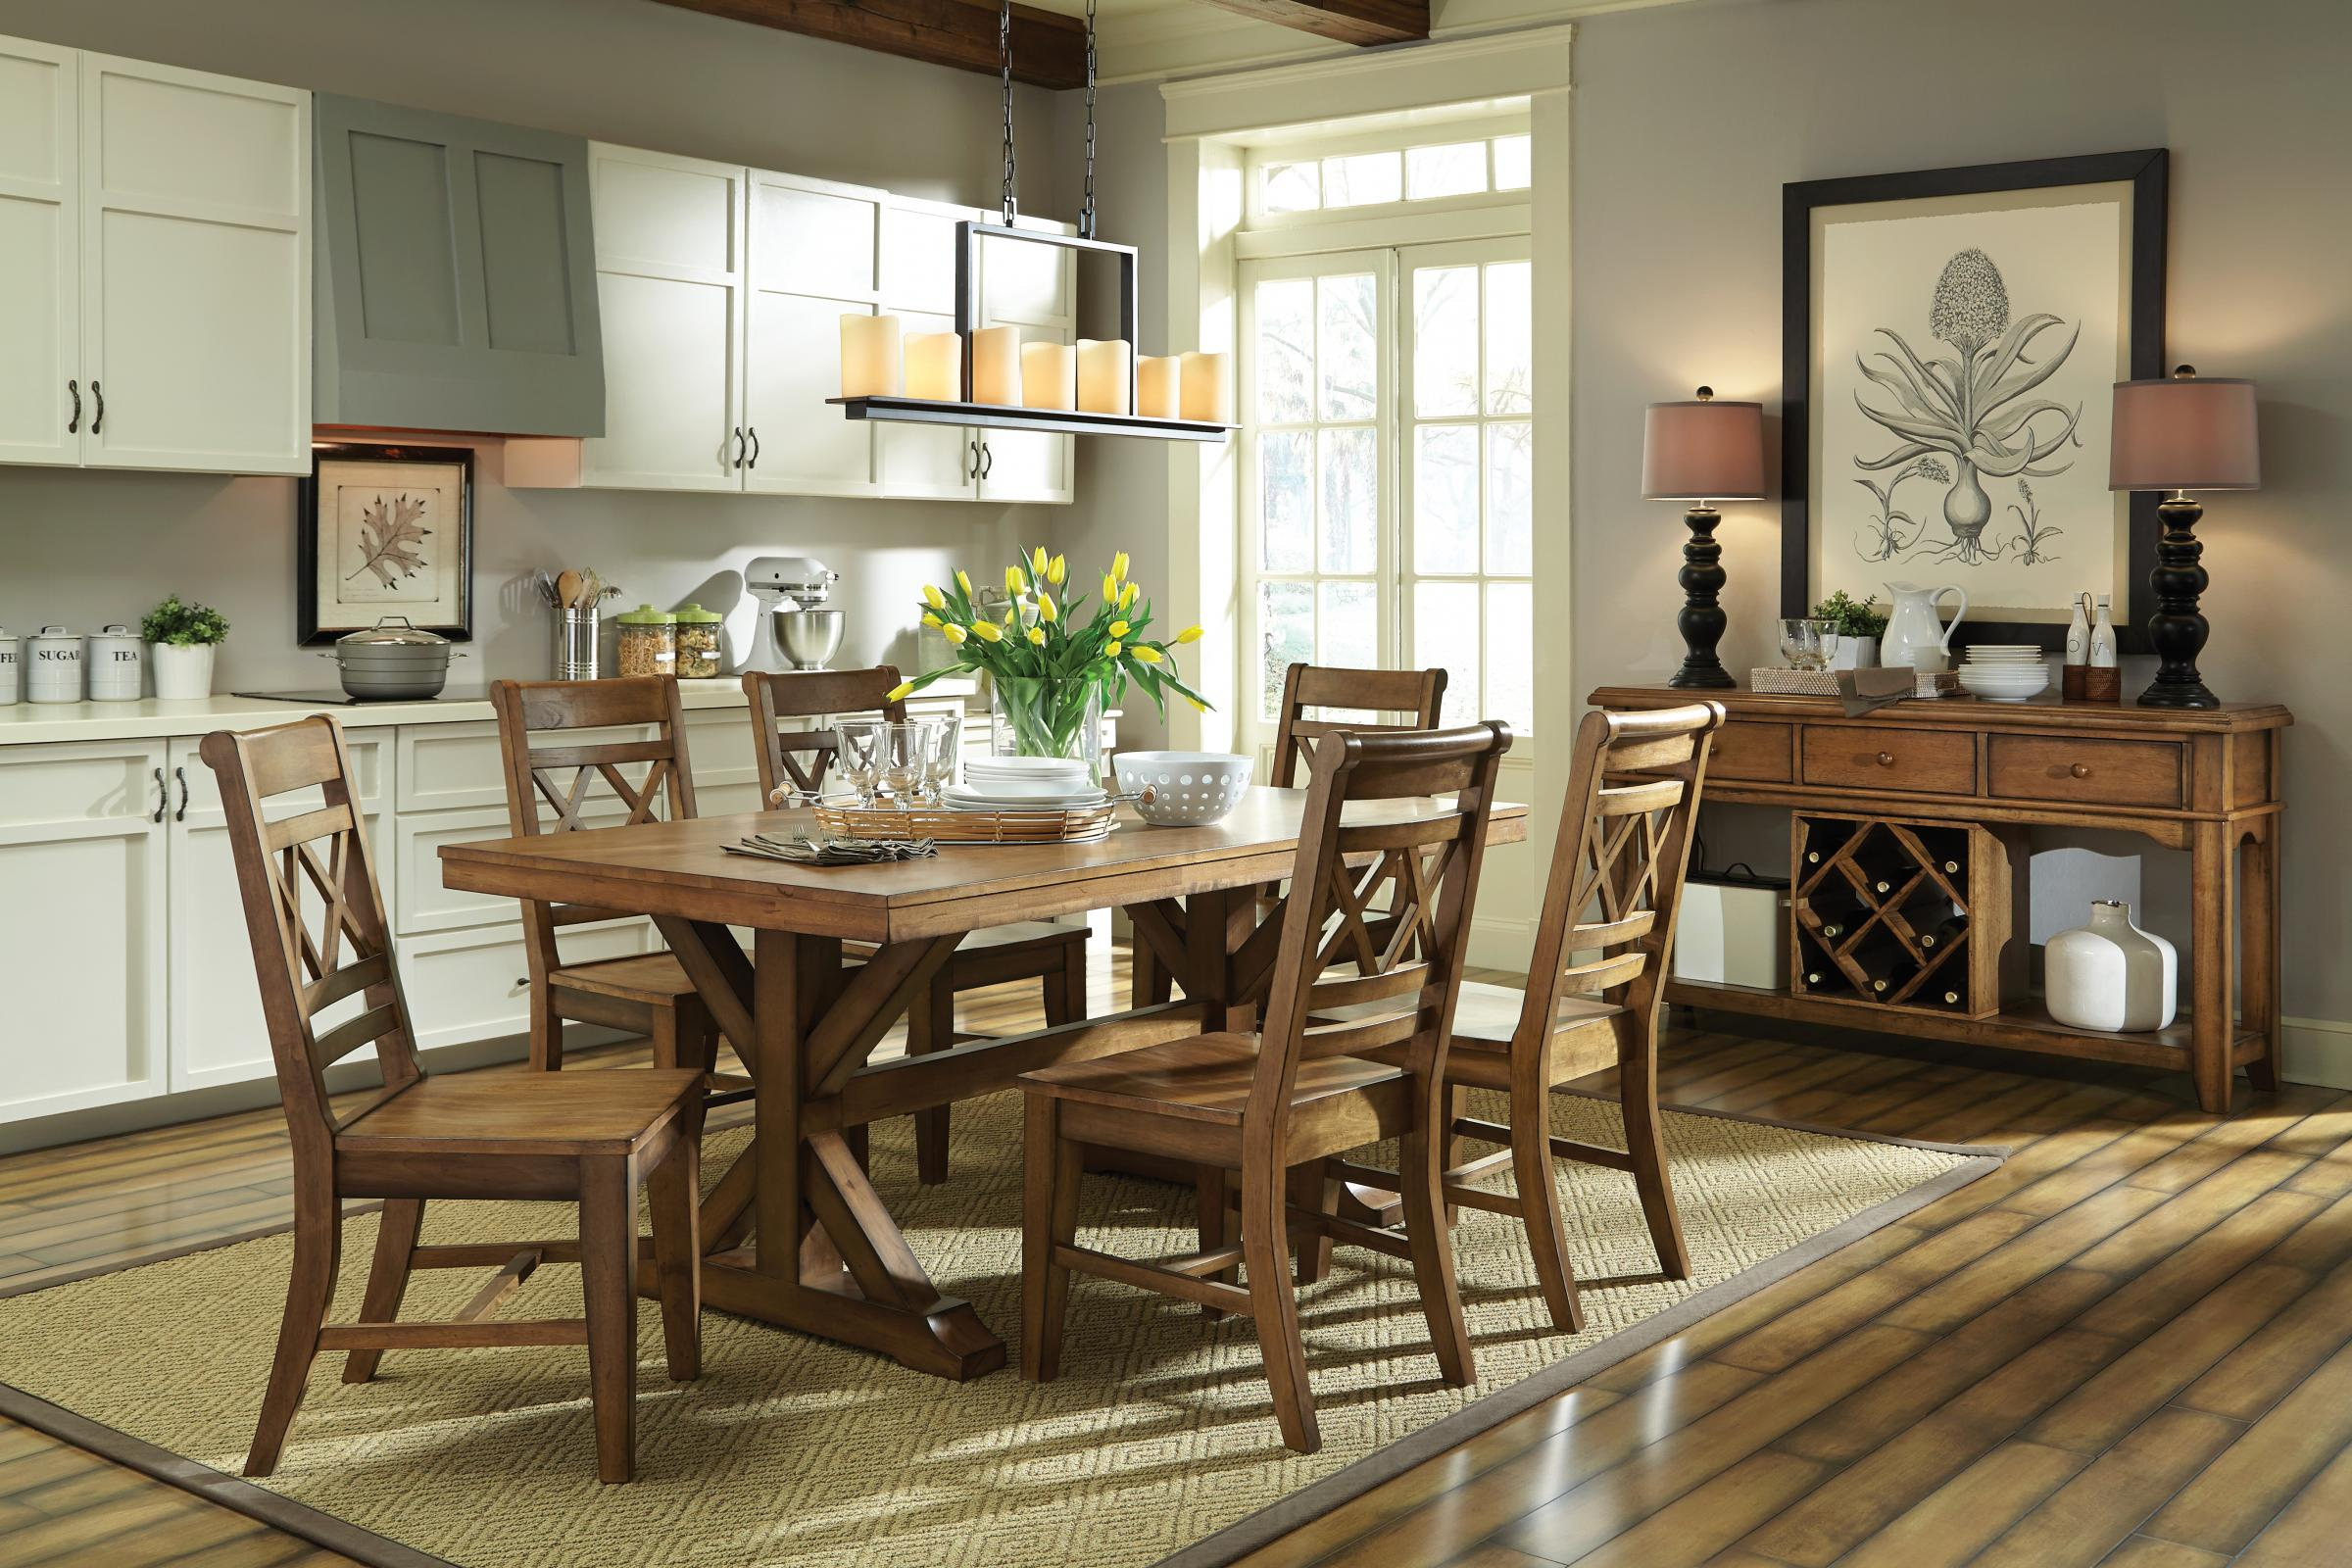 John thomas dinettes unlimited for Small casual dining sets